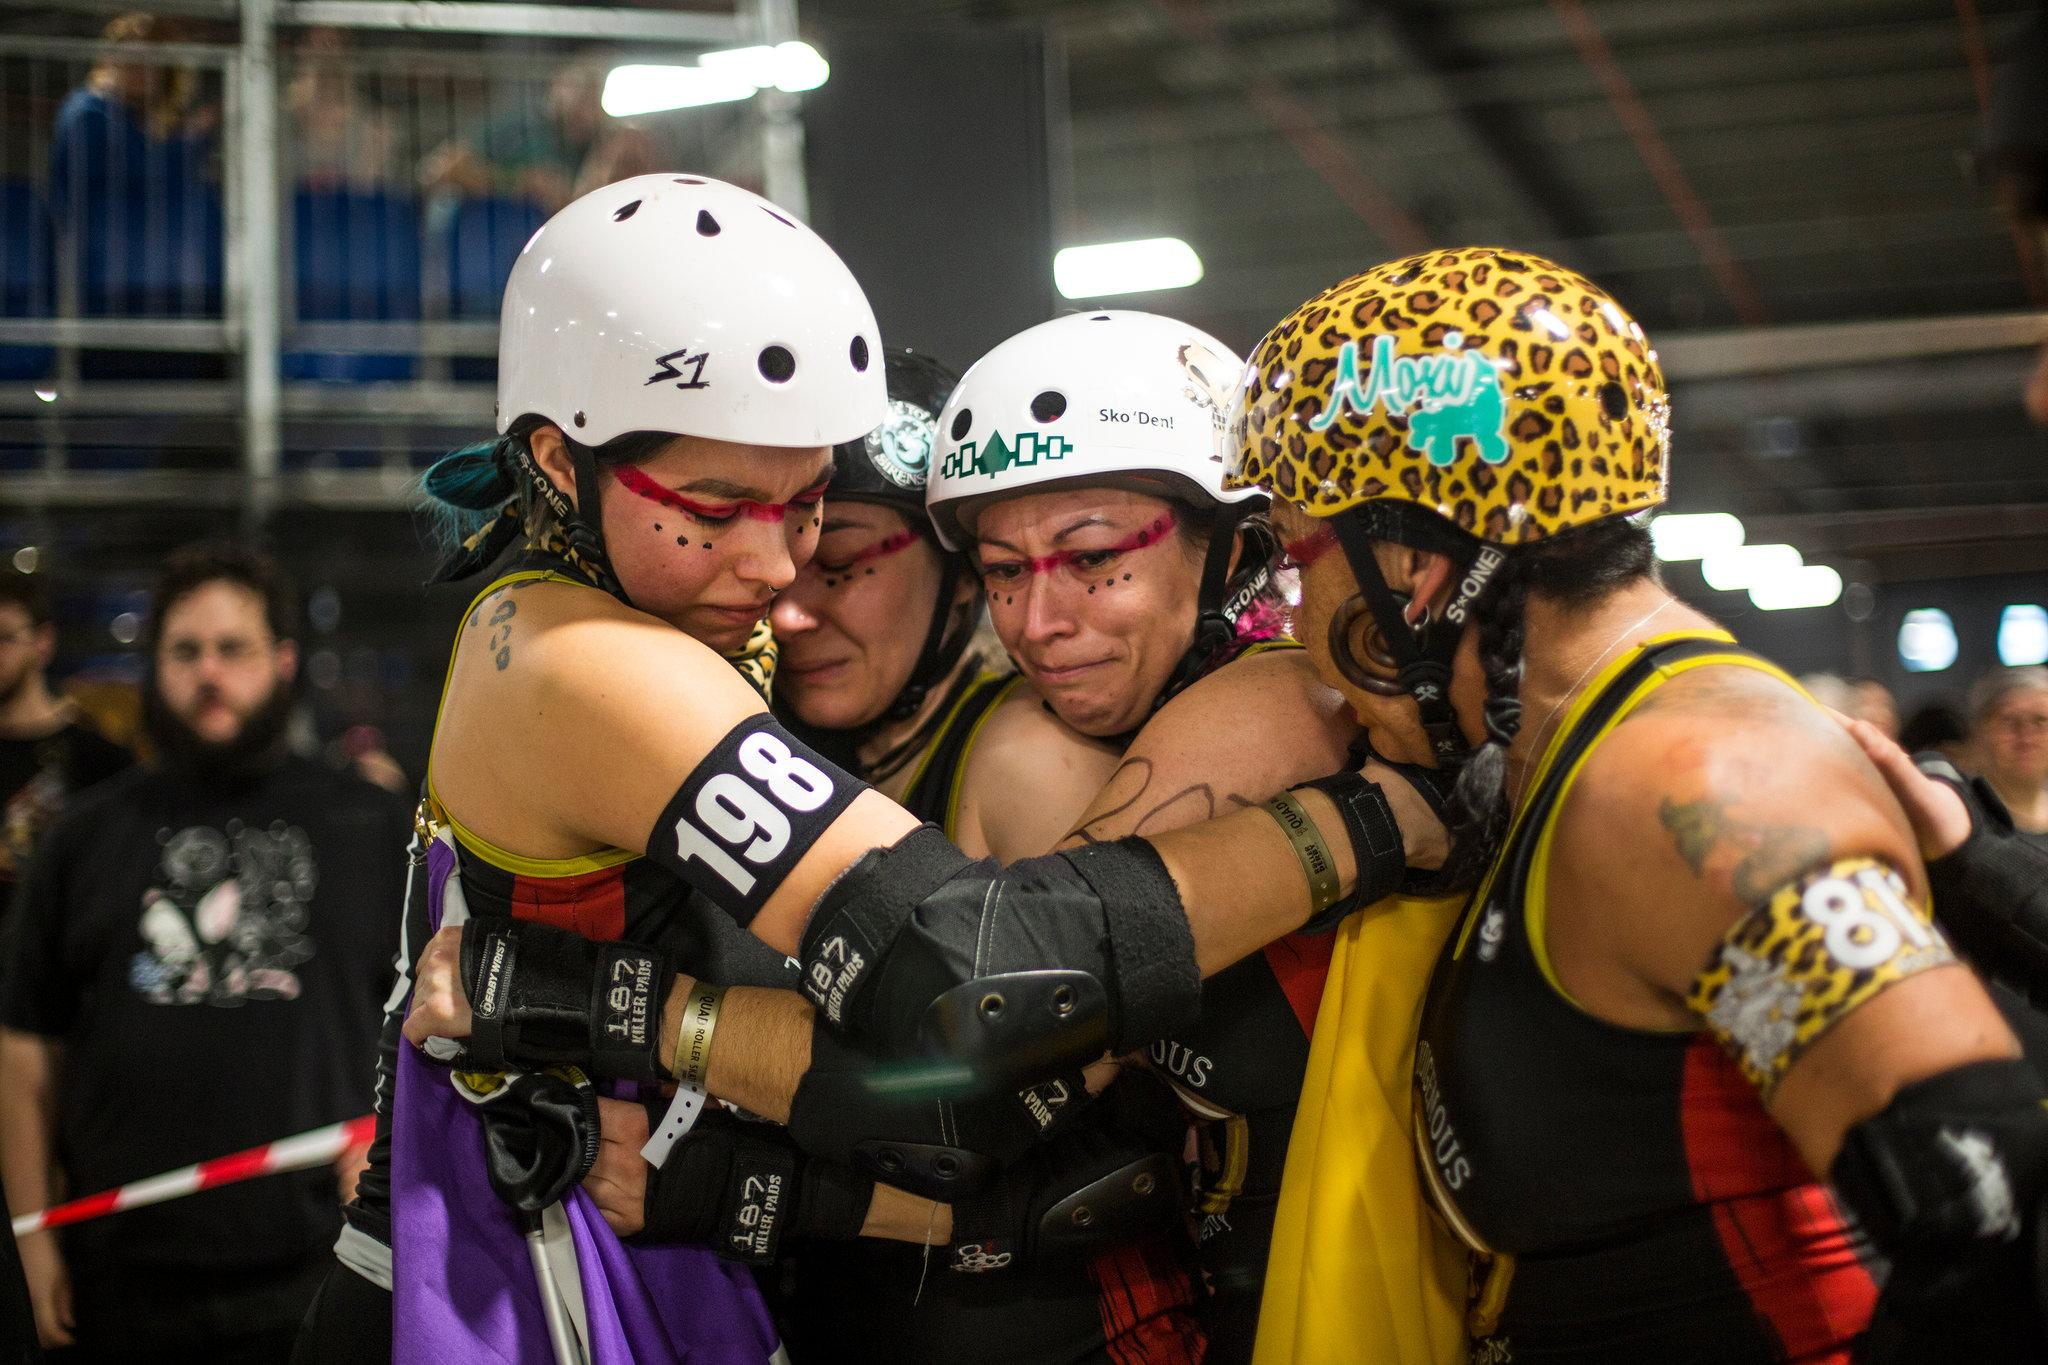 """From left, Ms. Ghosen; Amil Dupuis-Rossi, a.k.a. """"The Fighting Mongoose""""; Michelle Cross, a.k.a. """"Squarrior""""; and Ms. Bontkes of Team Indigenous hugged before their last World Cup roller derby game. Photo Credit: Rachel Clara Reed for The New York Times"""